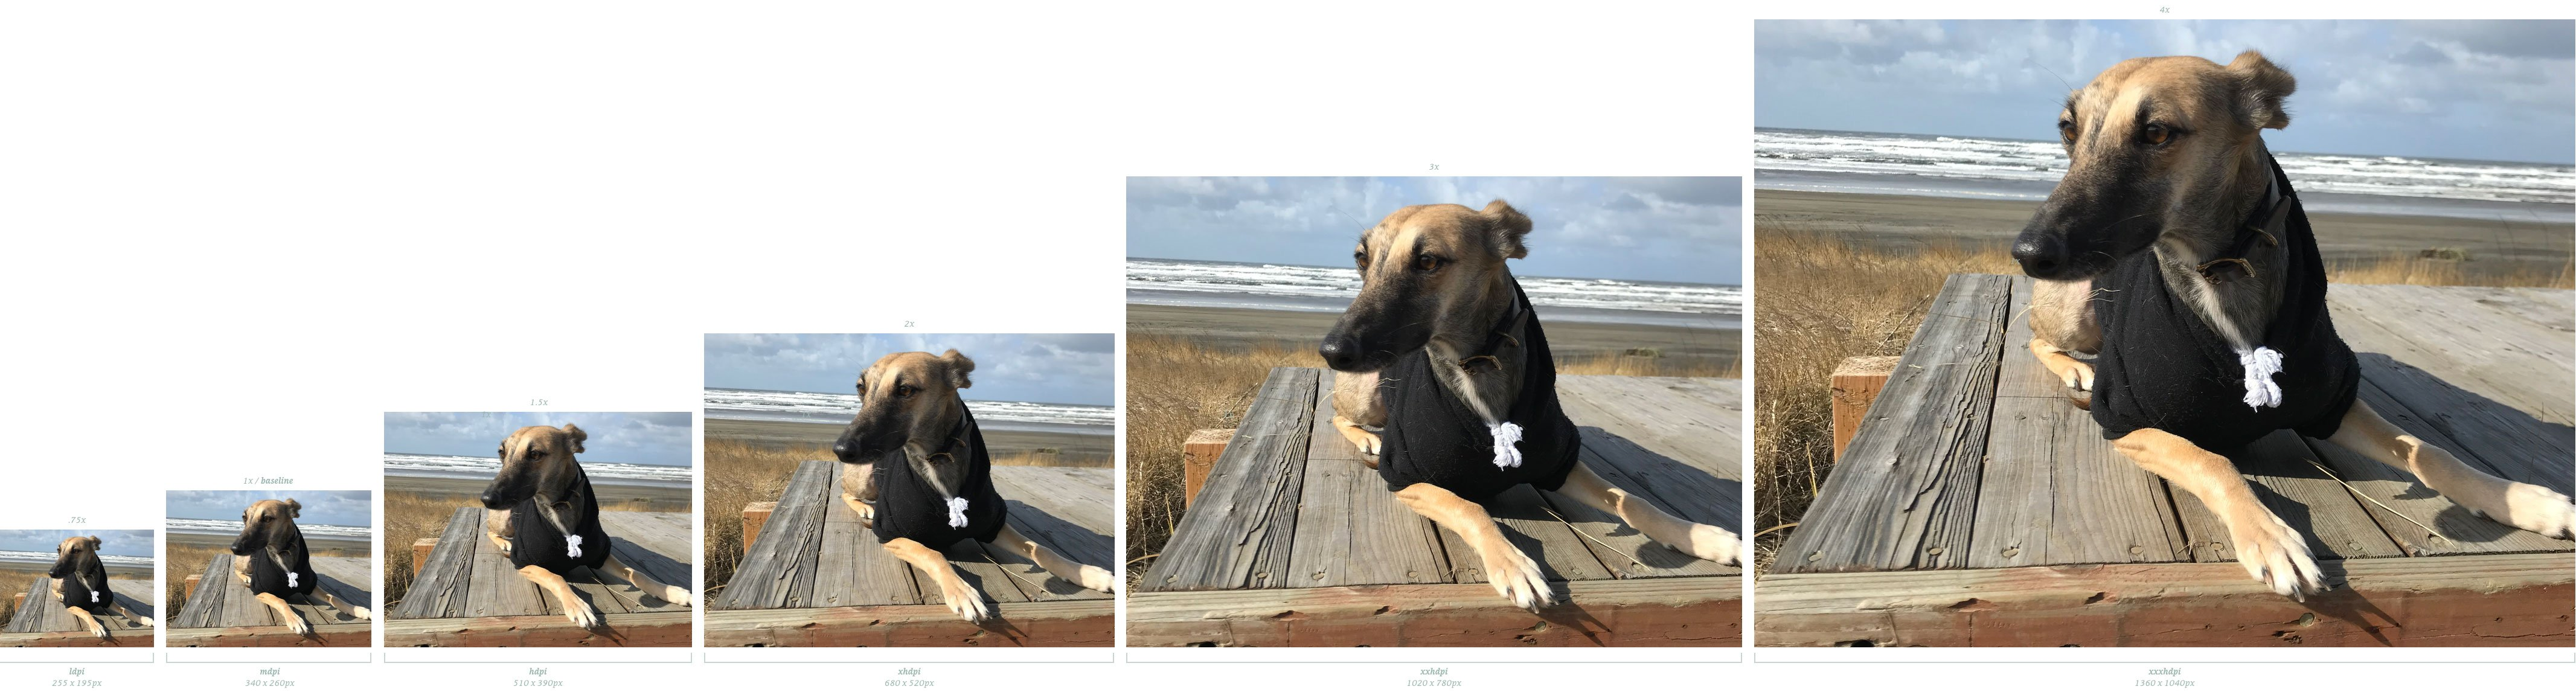 A photo of a dog scaling from smallest image on the left to largest image on the right.